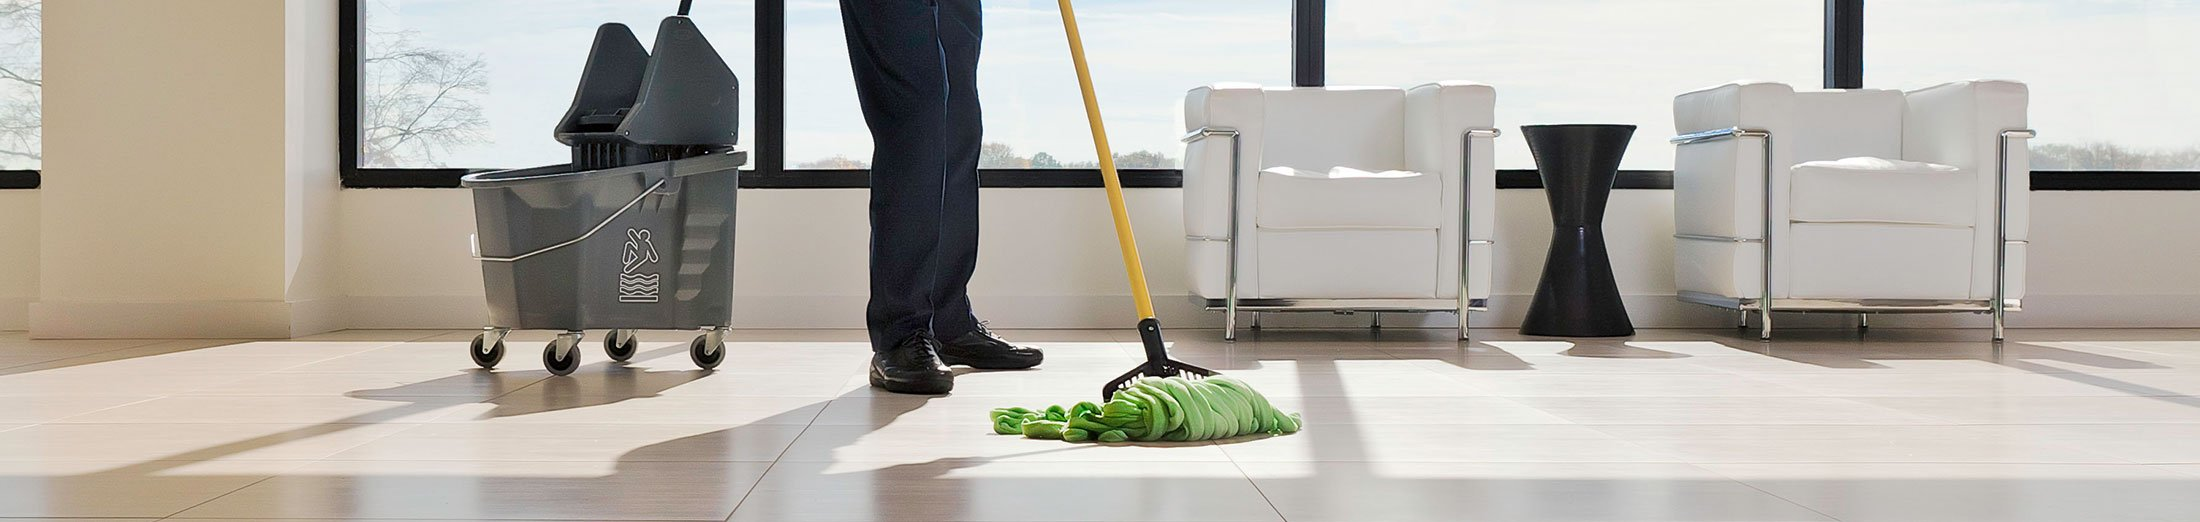 mopping home